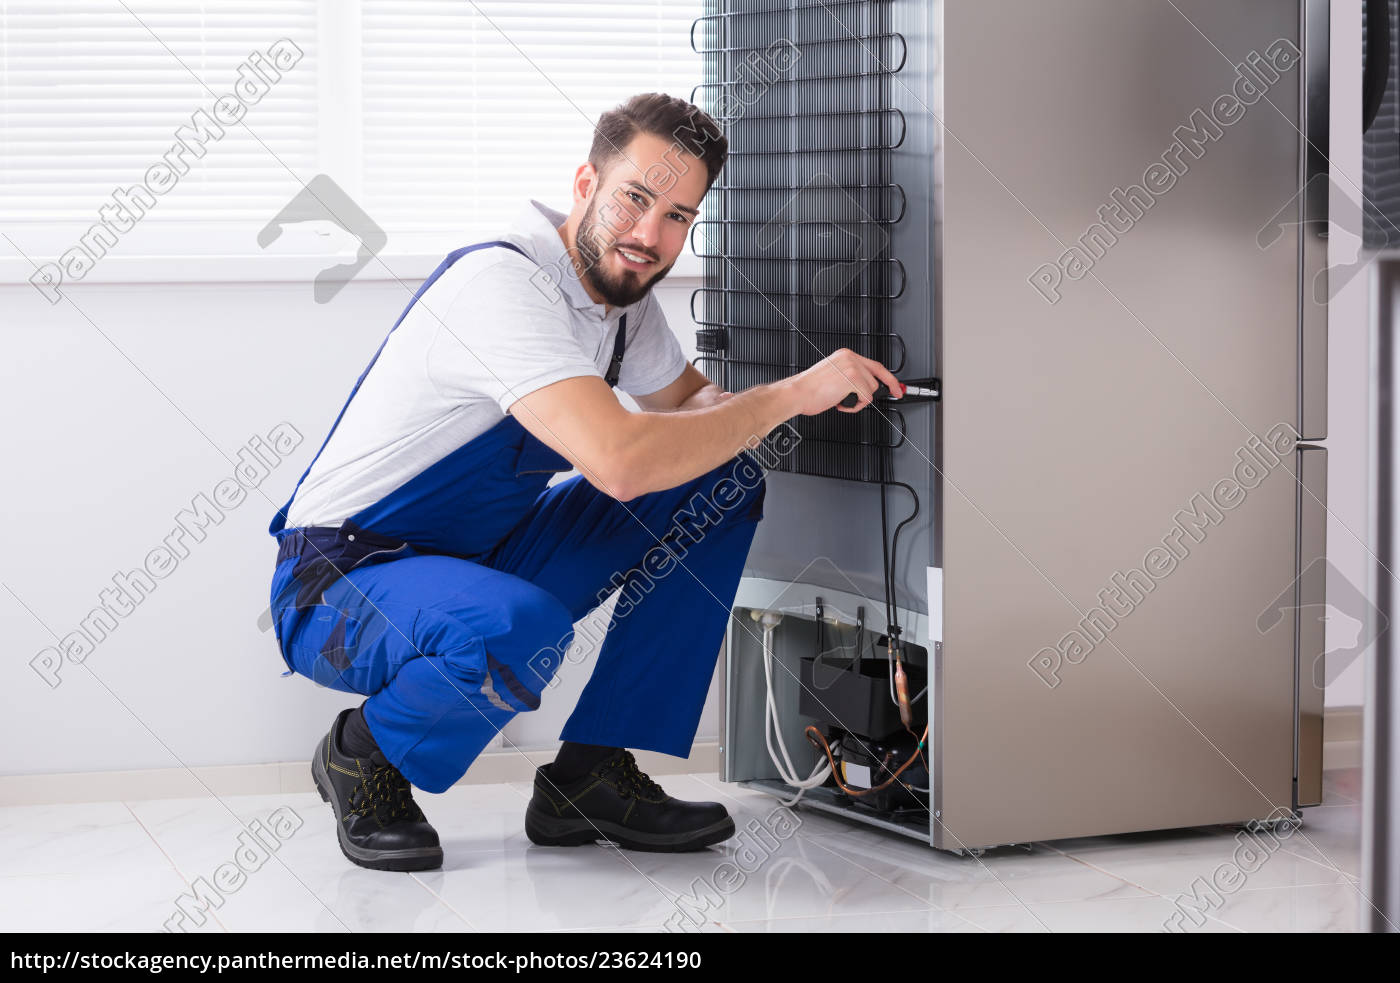 technician, fixing, refrigerator - 23624190